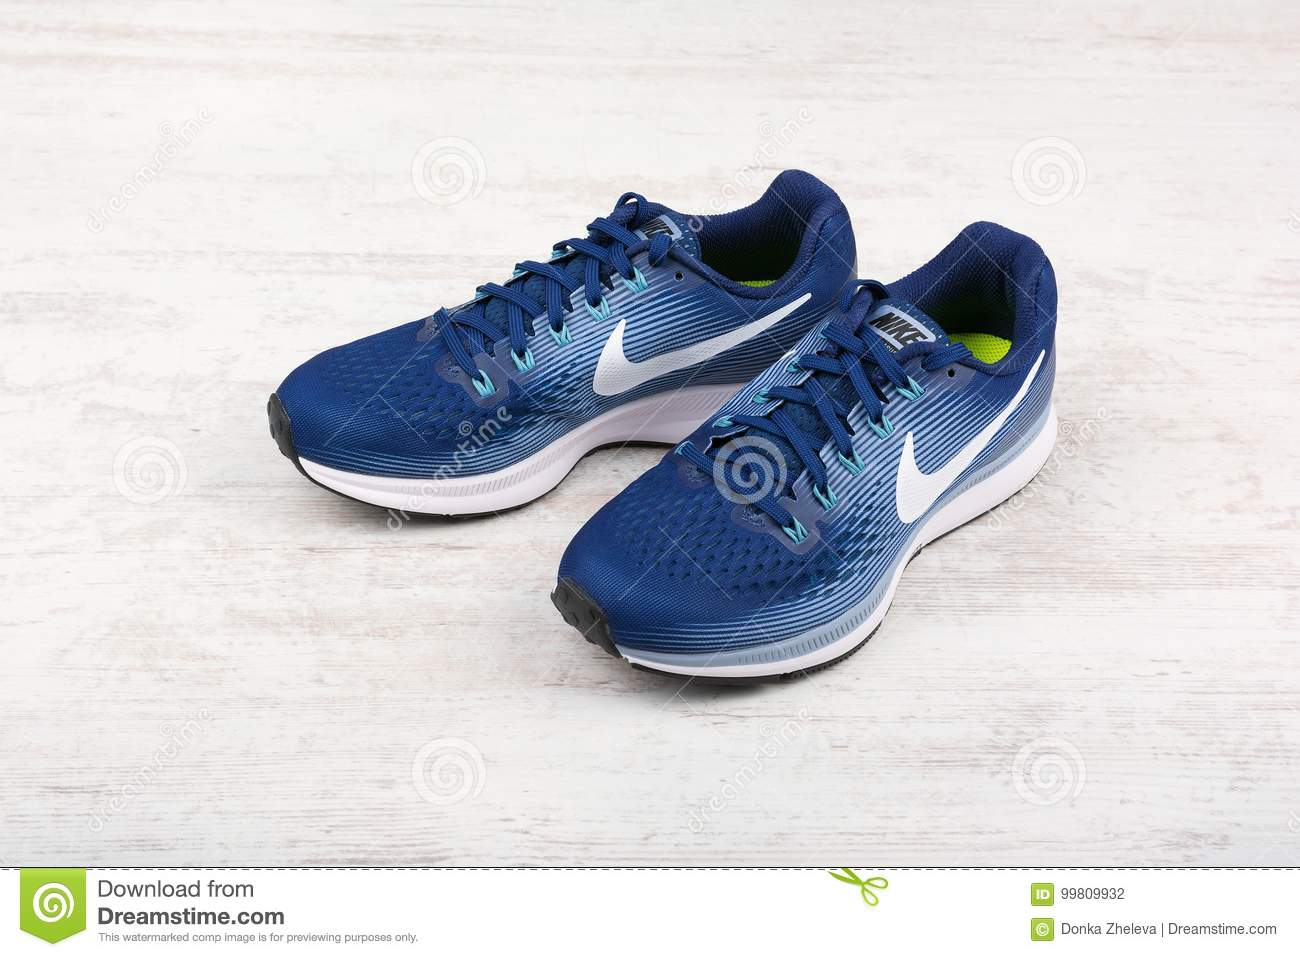 252d8899 BURGAS, BULGARIA - SEPTEMBER 6, 2017: Nike Air Zoom Pegasus 34 Women`s  Running Shoes in blue on white wooden background. Nike is a global sports  clothes and ...